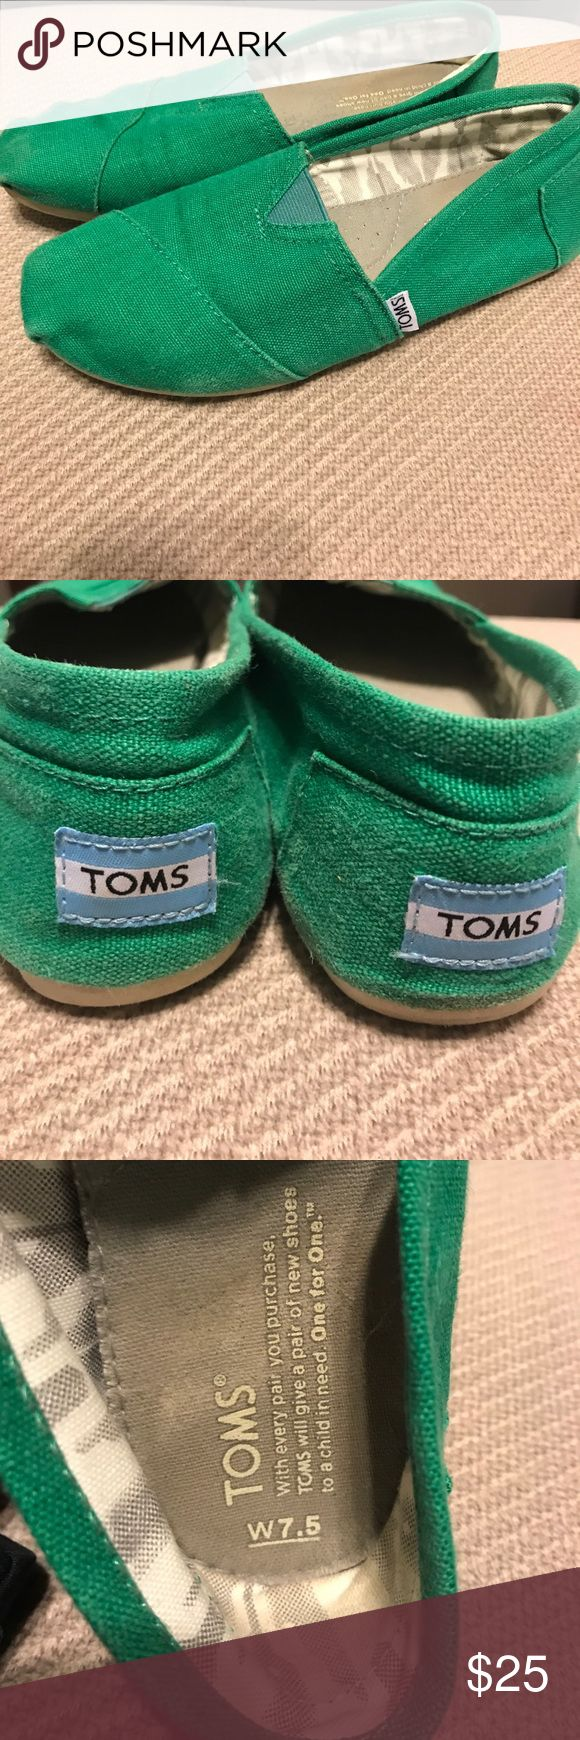 Green Toms Only worn a few times! Green, size 7.5 Toms in great condition! TOMS Shoes